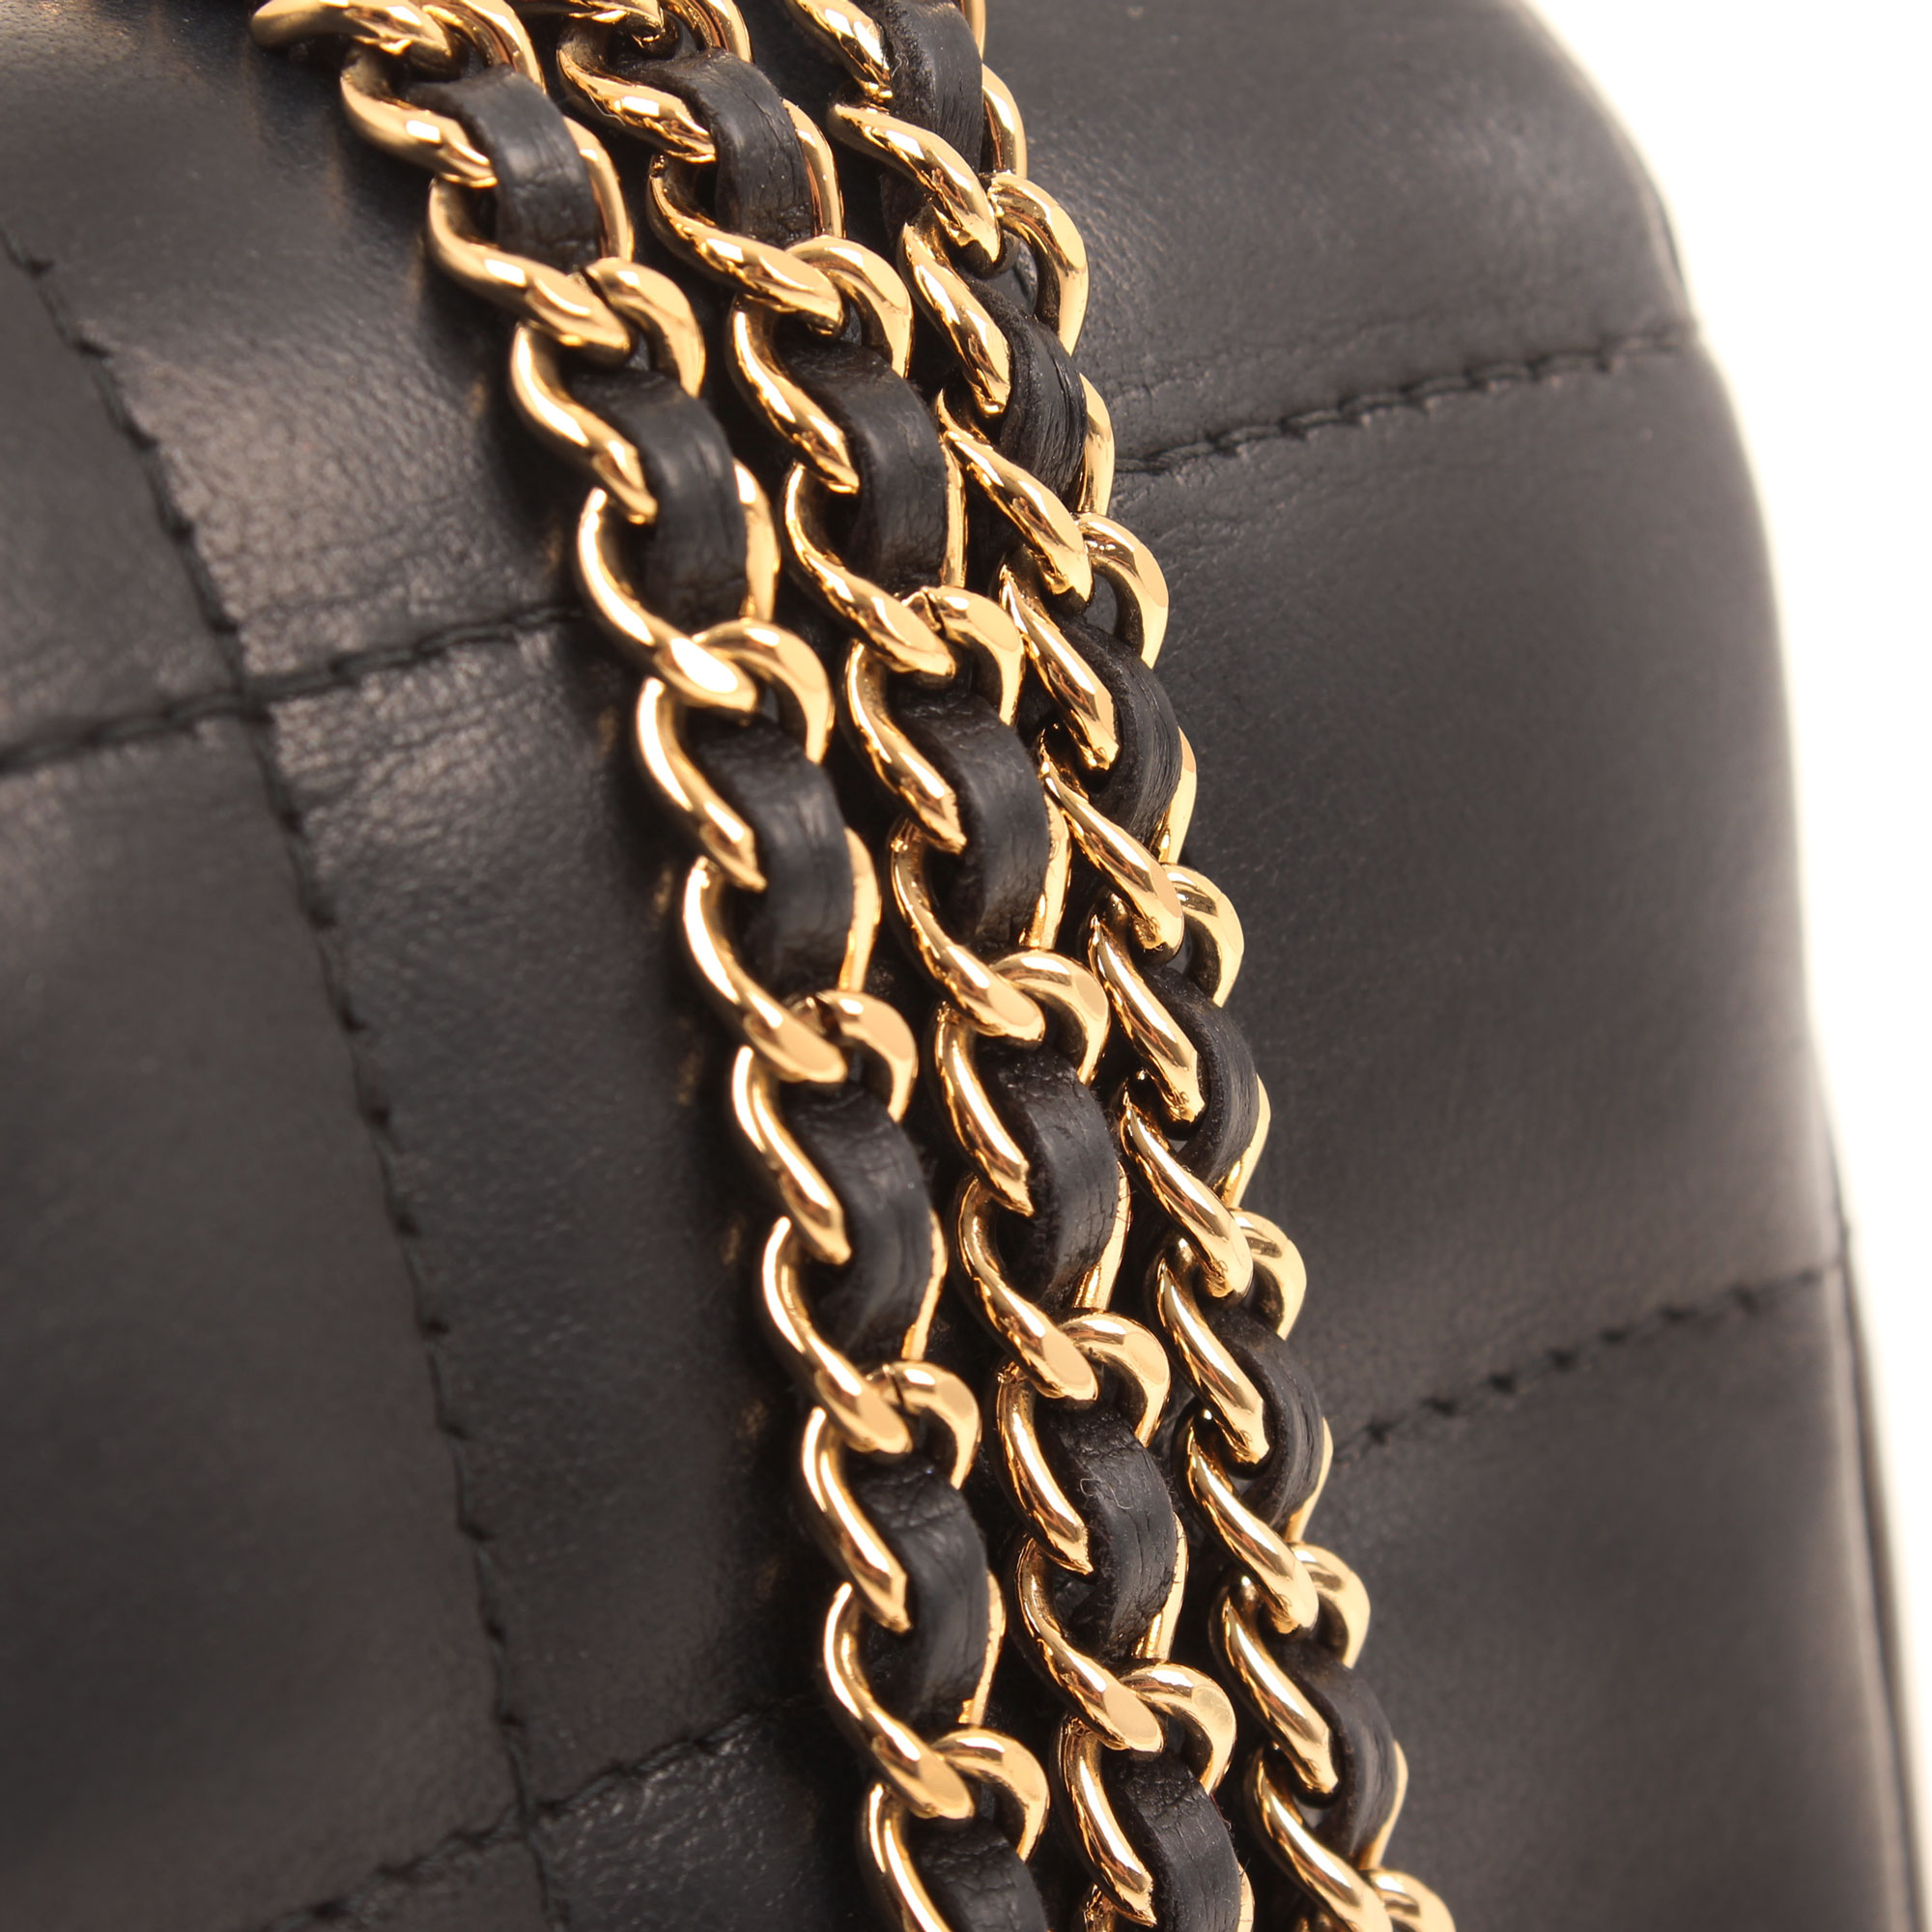 Imagen de detalle de la cadena del bolso chanel mini crossbody chocolate bar navy blue camelia